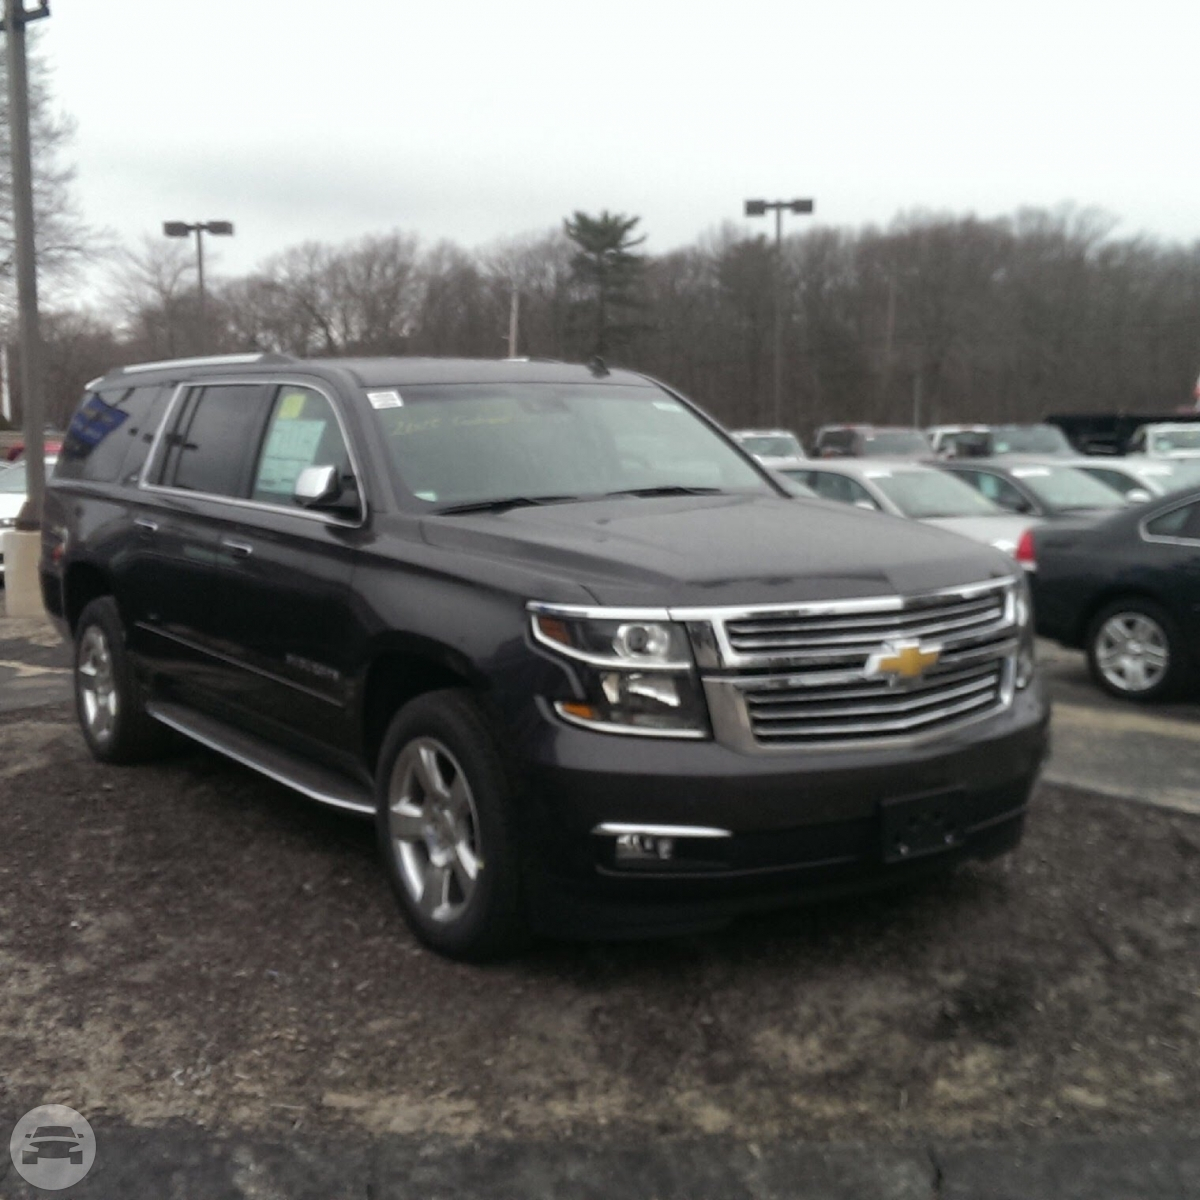 Chevrolet Suburban SUV  / Portland, OR   / Hourly $0.00